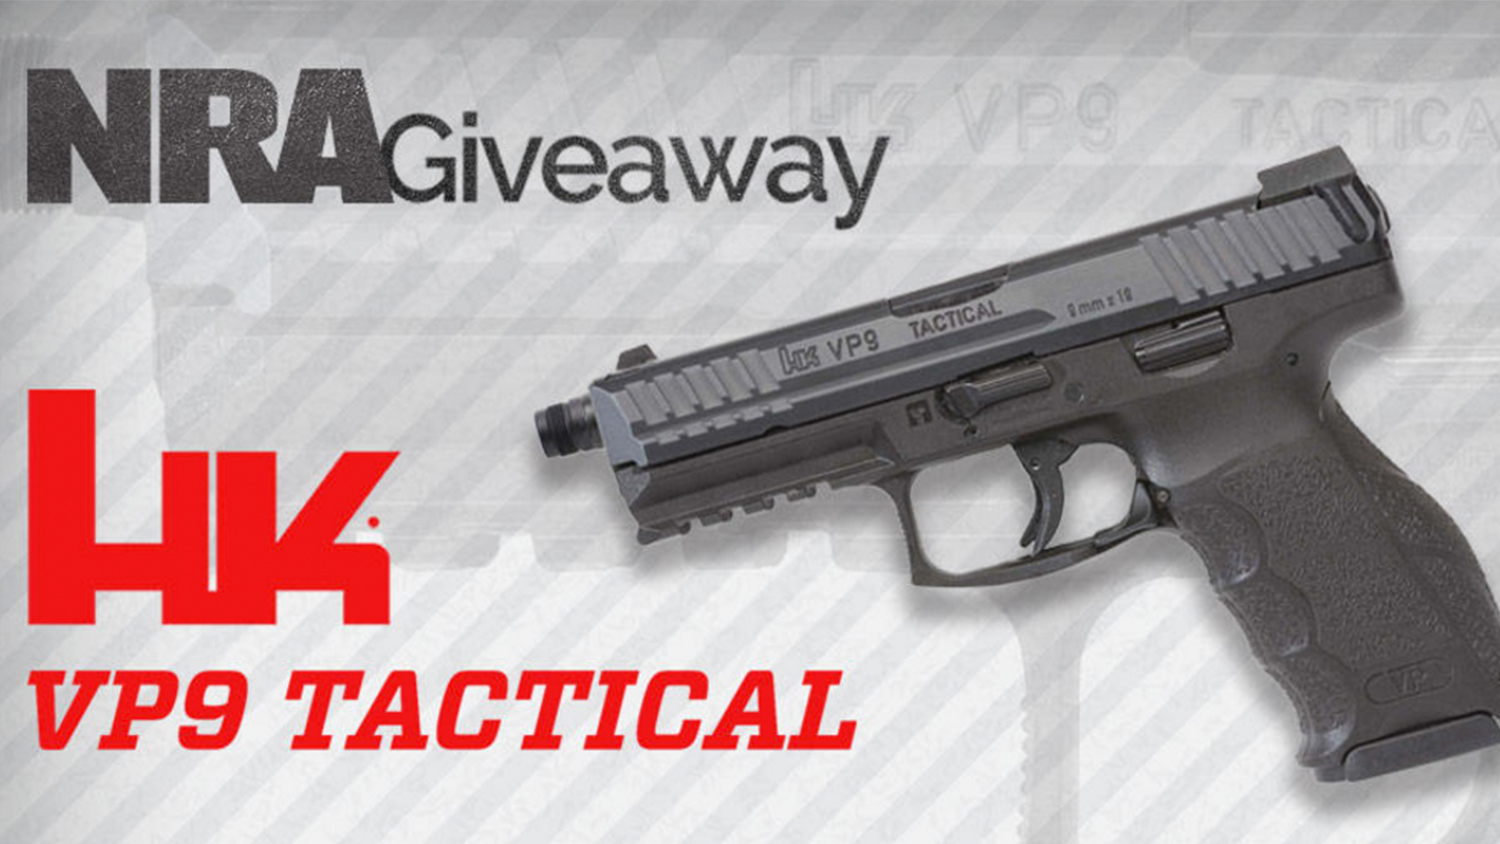 Heckler & Koch VP9 Tactical Giveaway